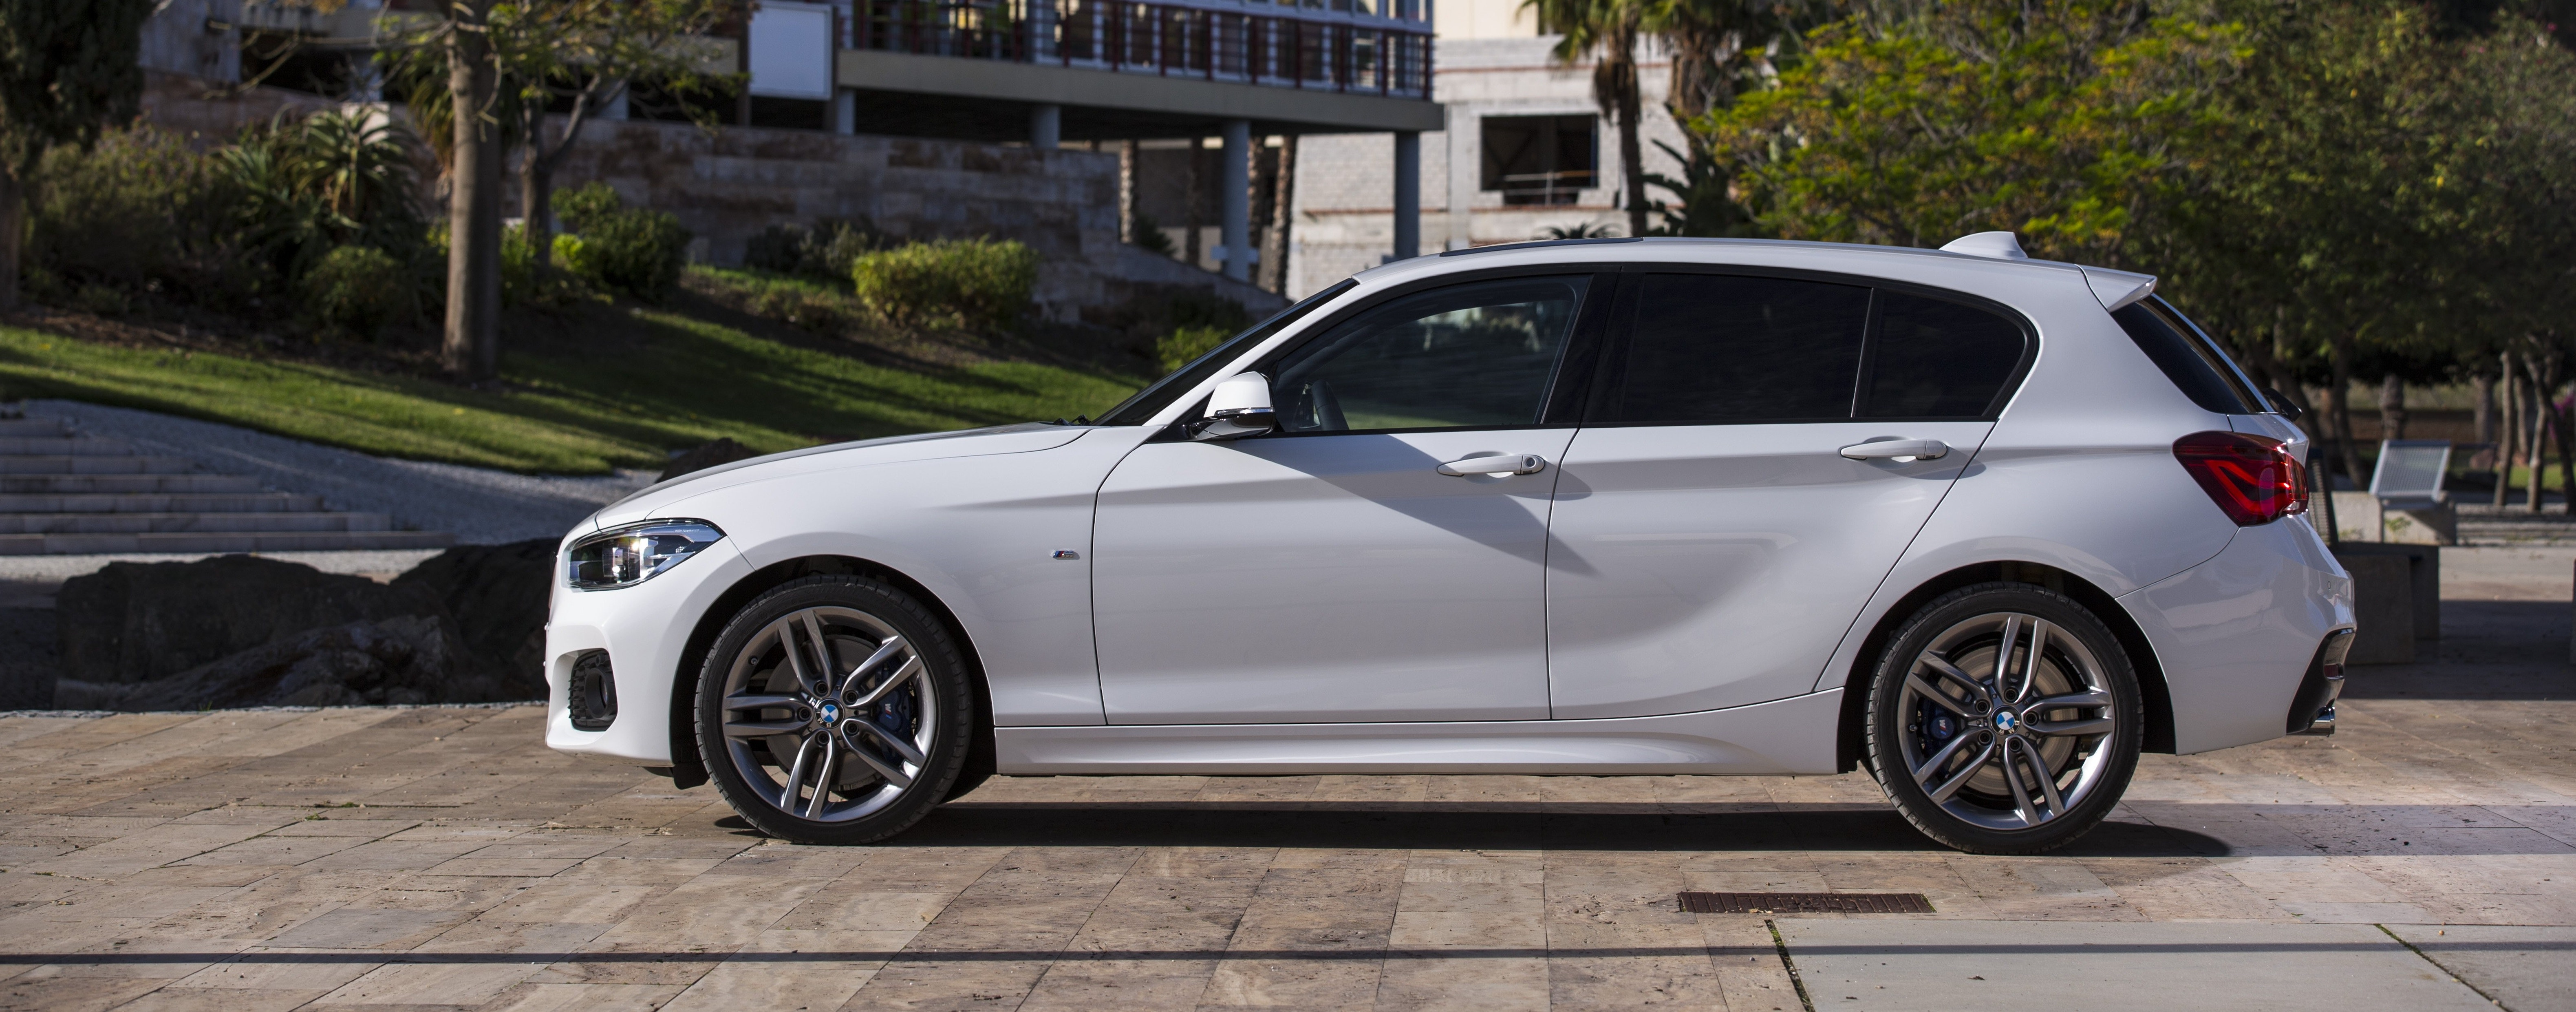 bmw 1 series sizes and dimensions guide | carwow